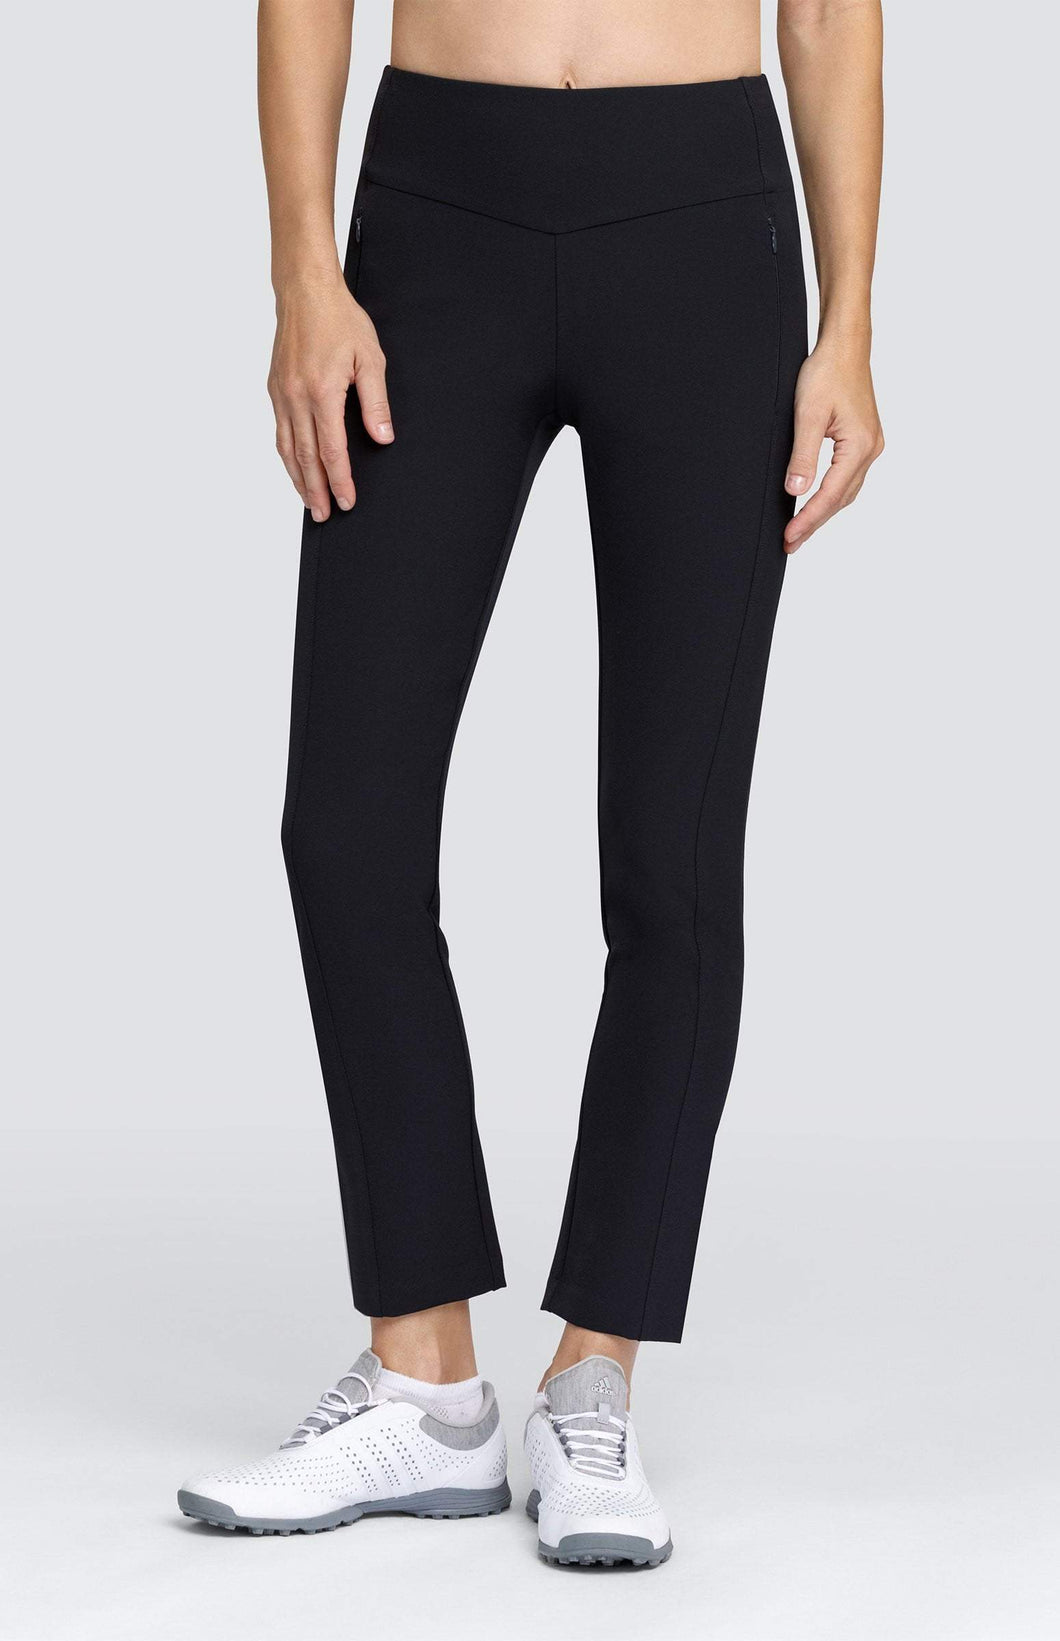 TAIL BOND PANT - ONYX BLACK